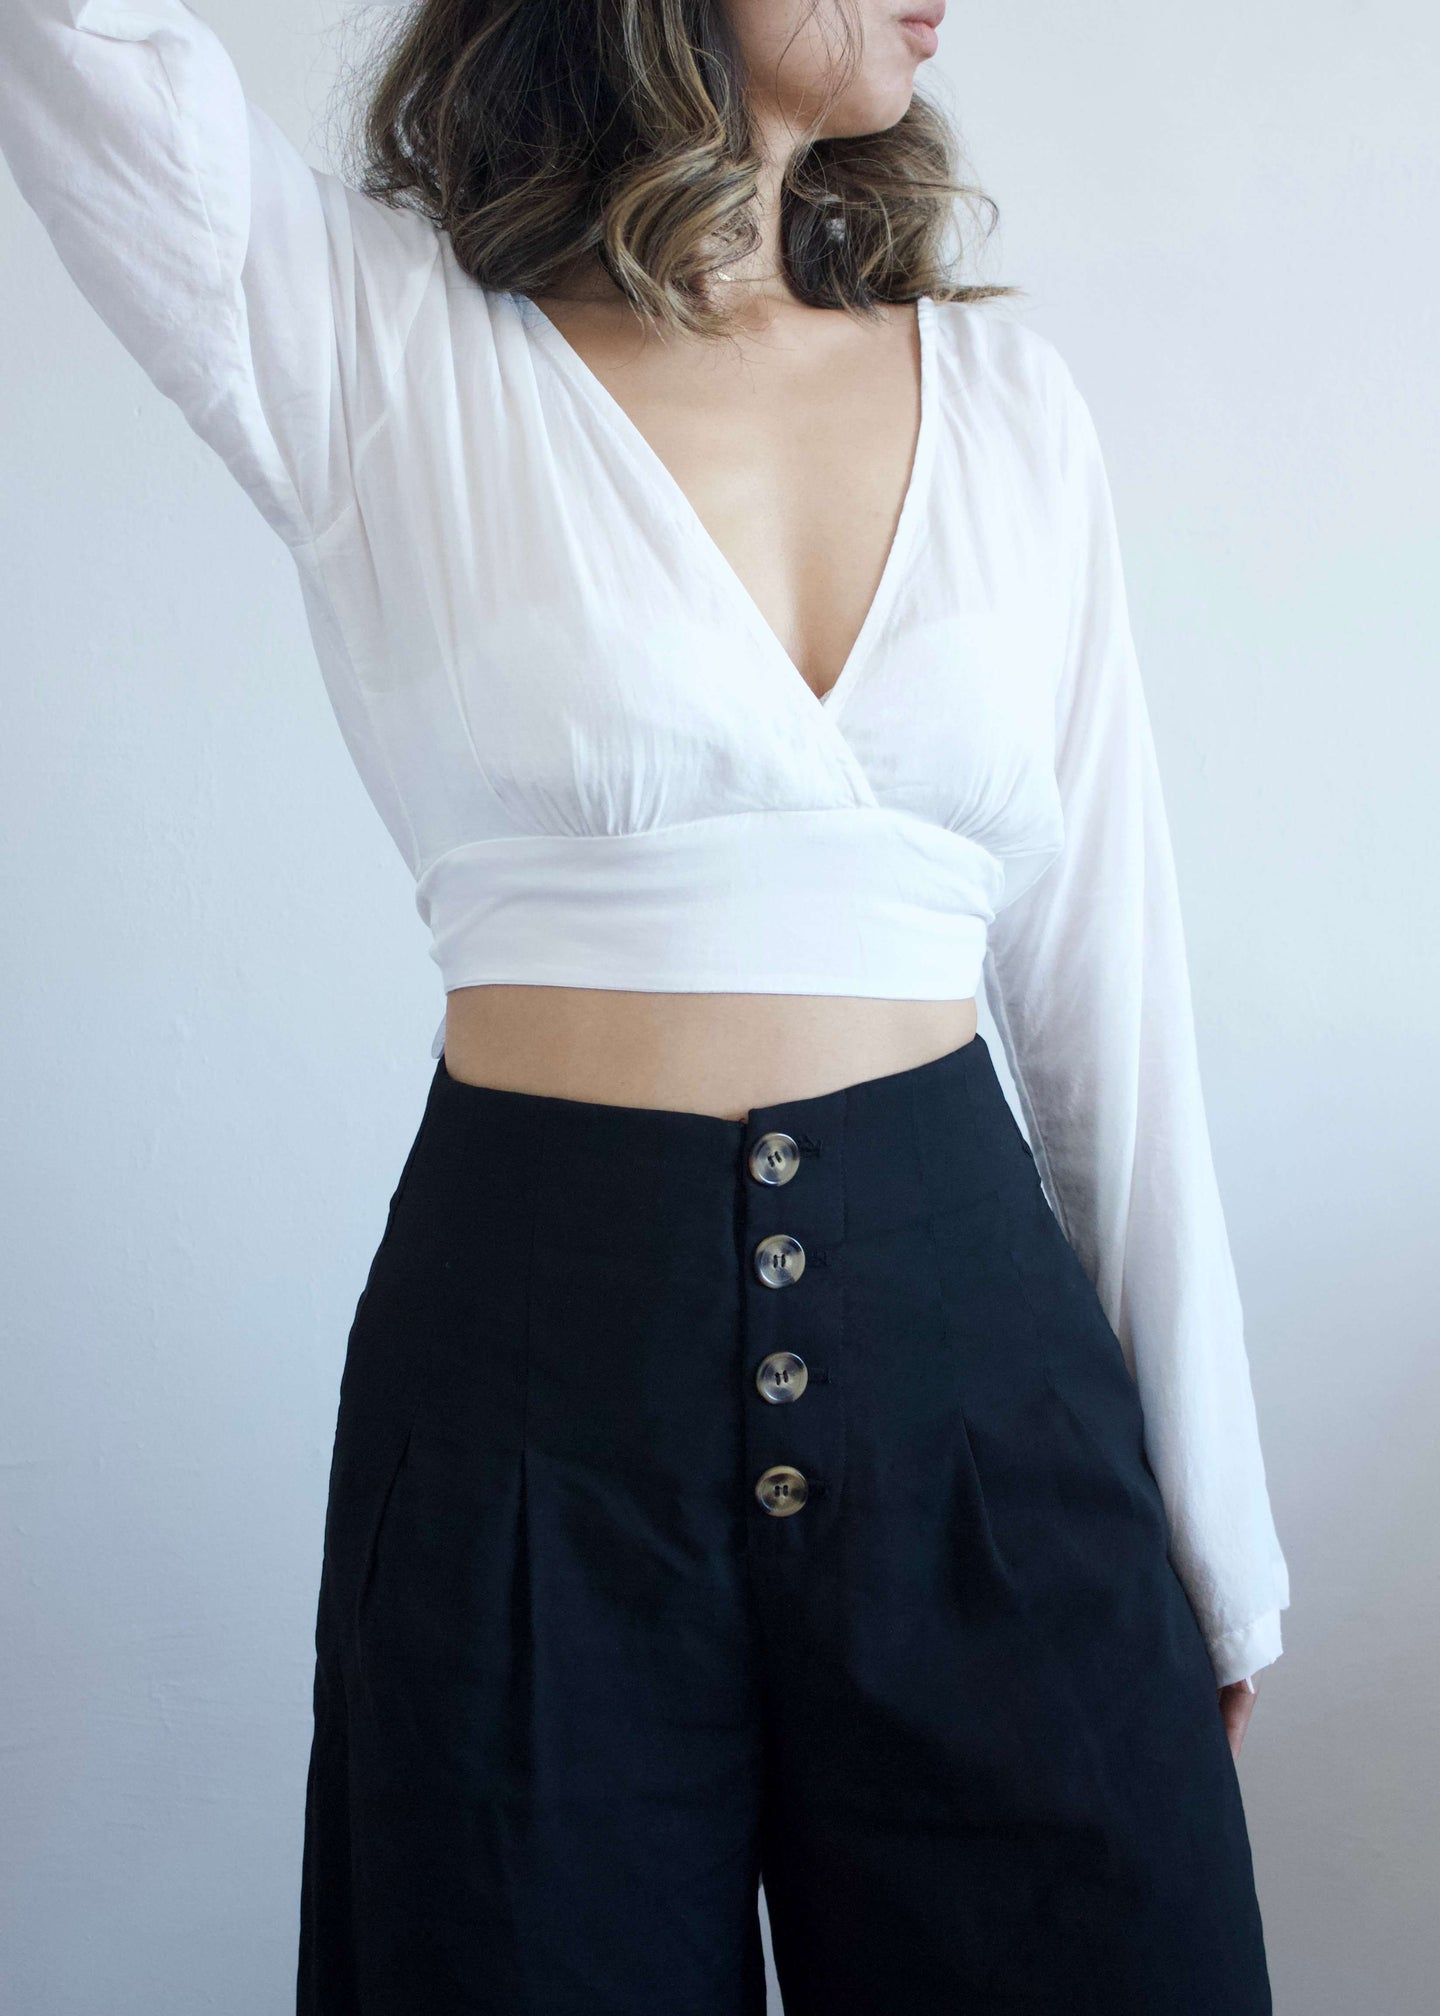 Mandy | White crop top blouse | Rue Saint Paul